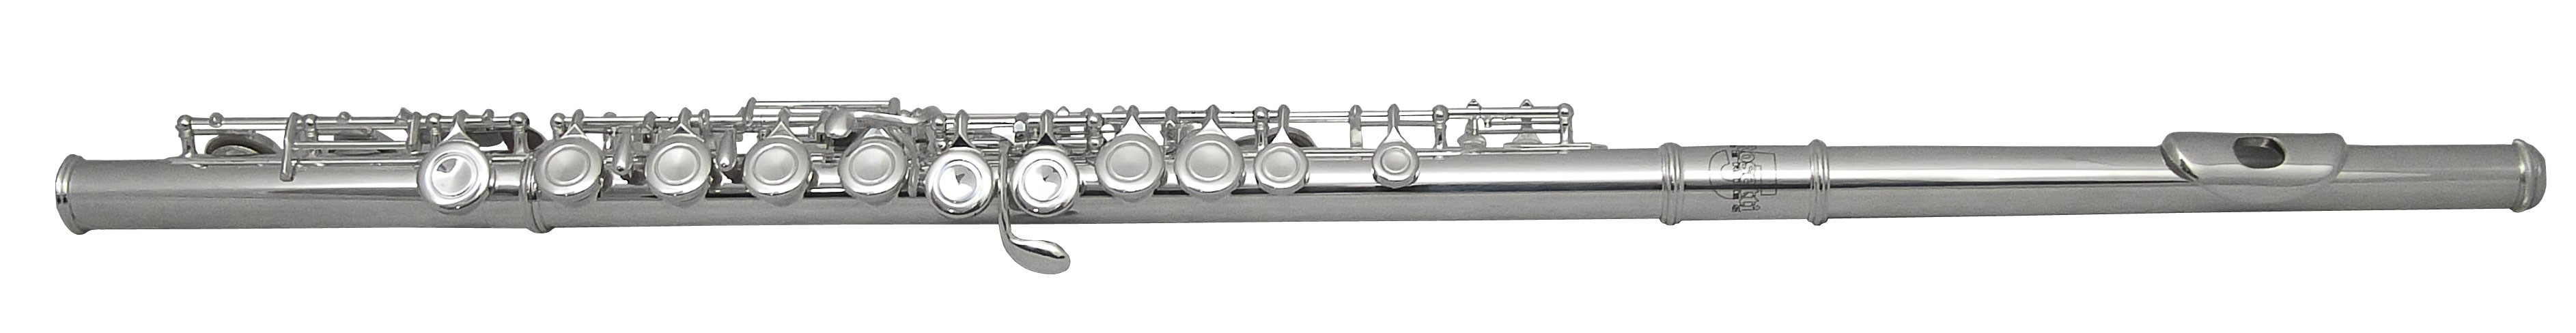 Rosetti Series 5 Flute Outfit - Silver Plated